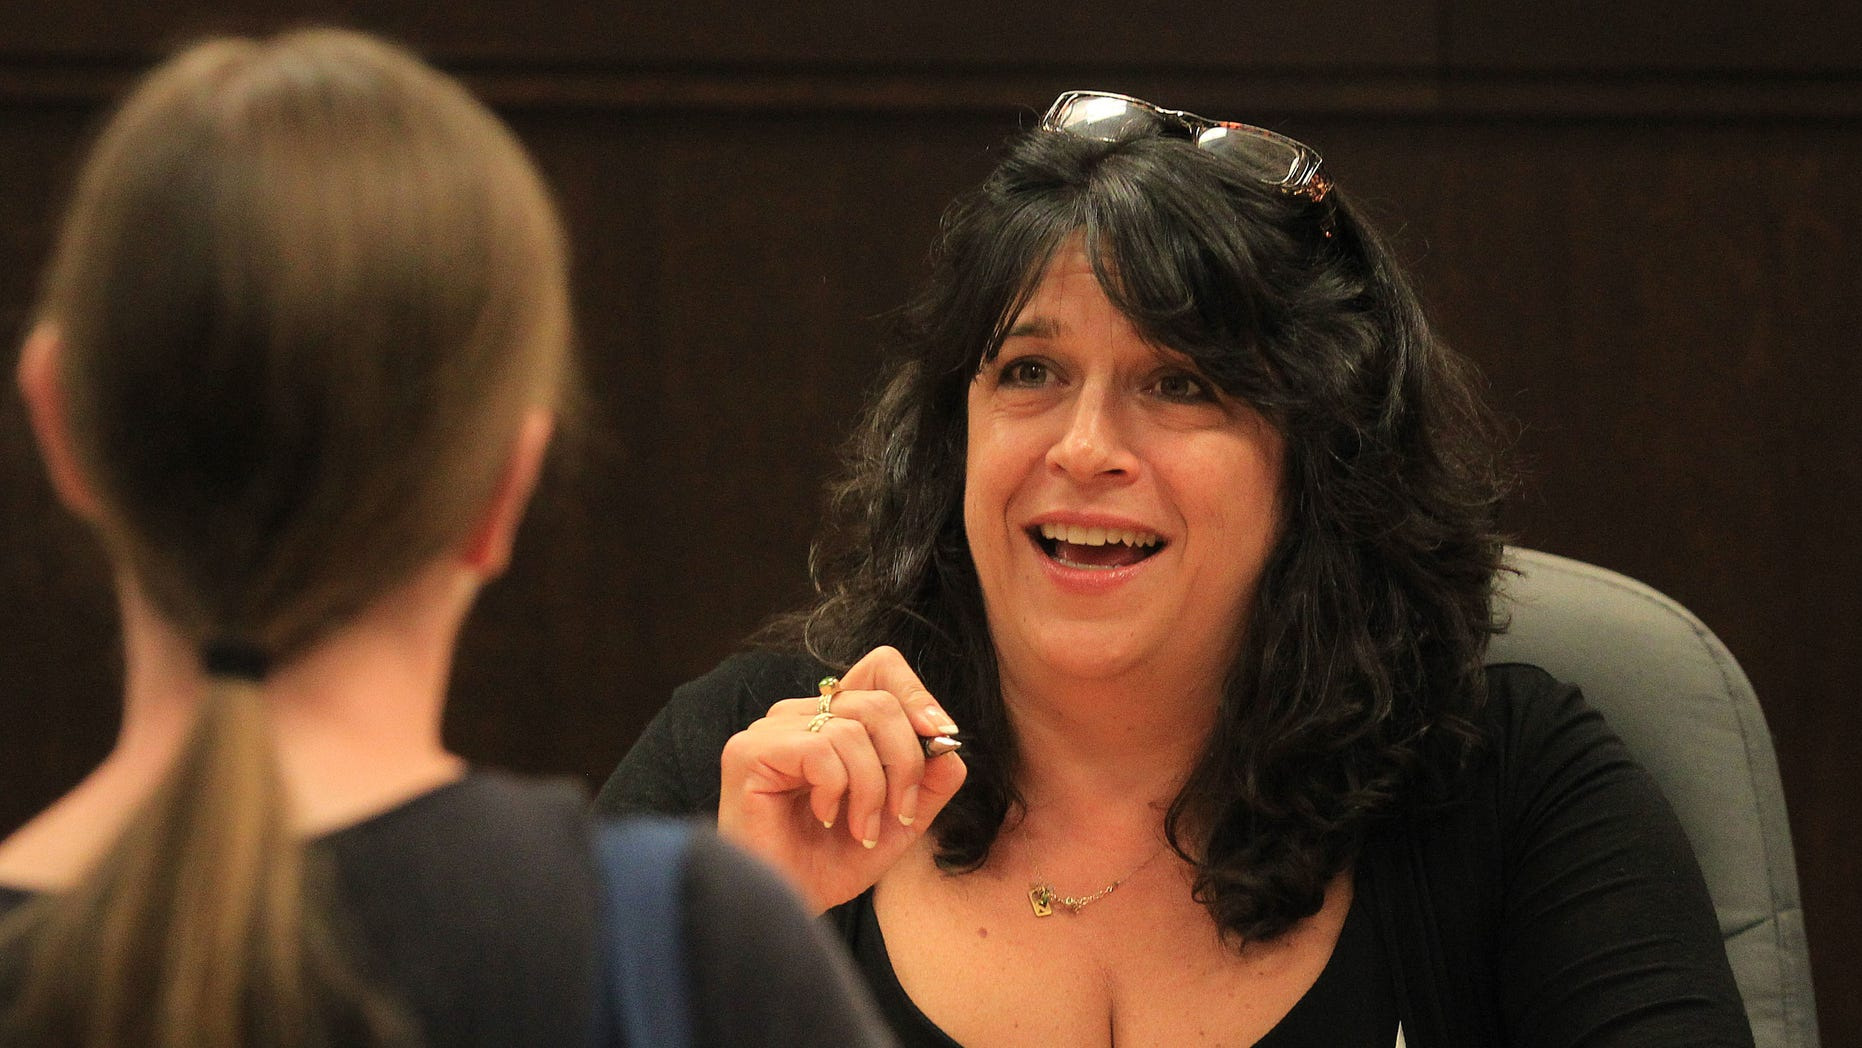 """LOS ANGELES, CA - SEPTEMBER 28:  Author E. L. James attends the E. L. James Book Signing For """"50 Shades Of Grey"""" at Barnes & Noble bookstore at The Grove on September 28, 2012 in Los Angeles, California.  (Photo by Frederick M. Brown/Getty Images)"""